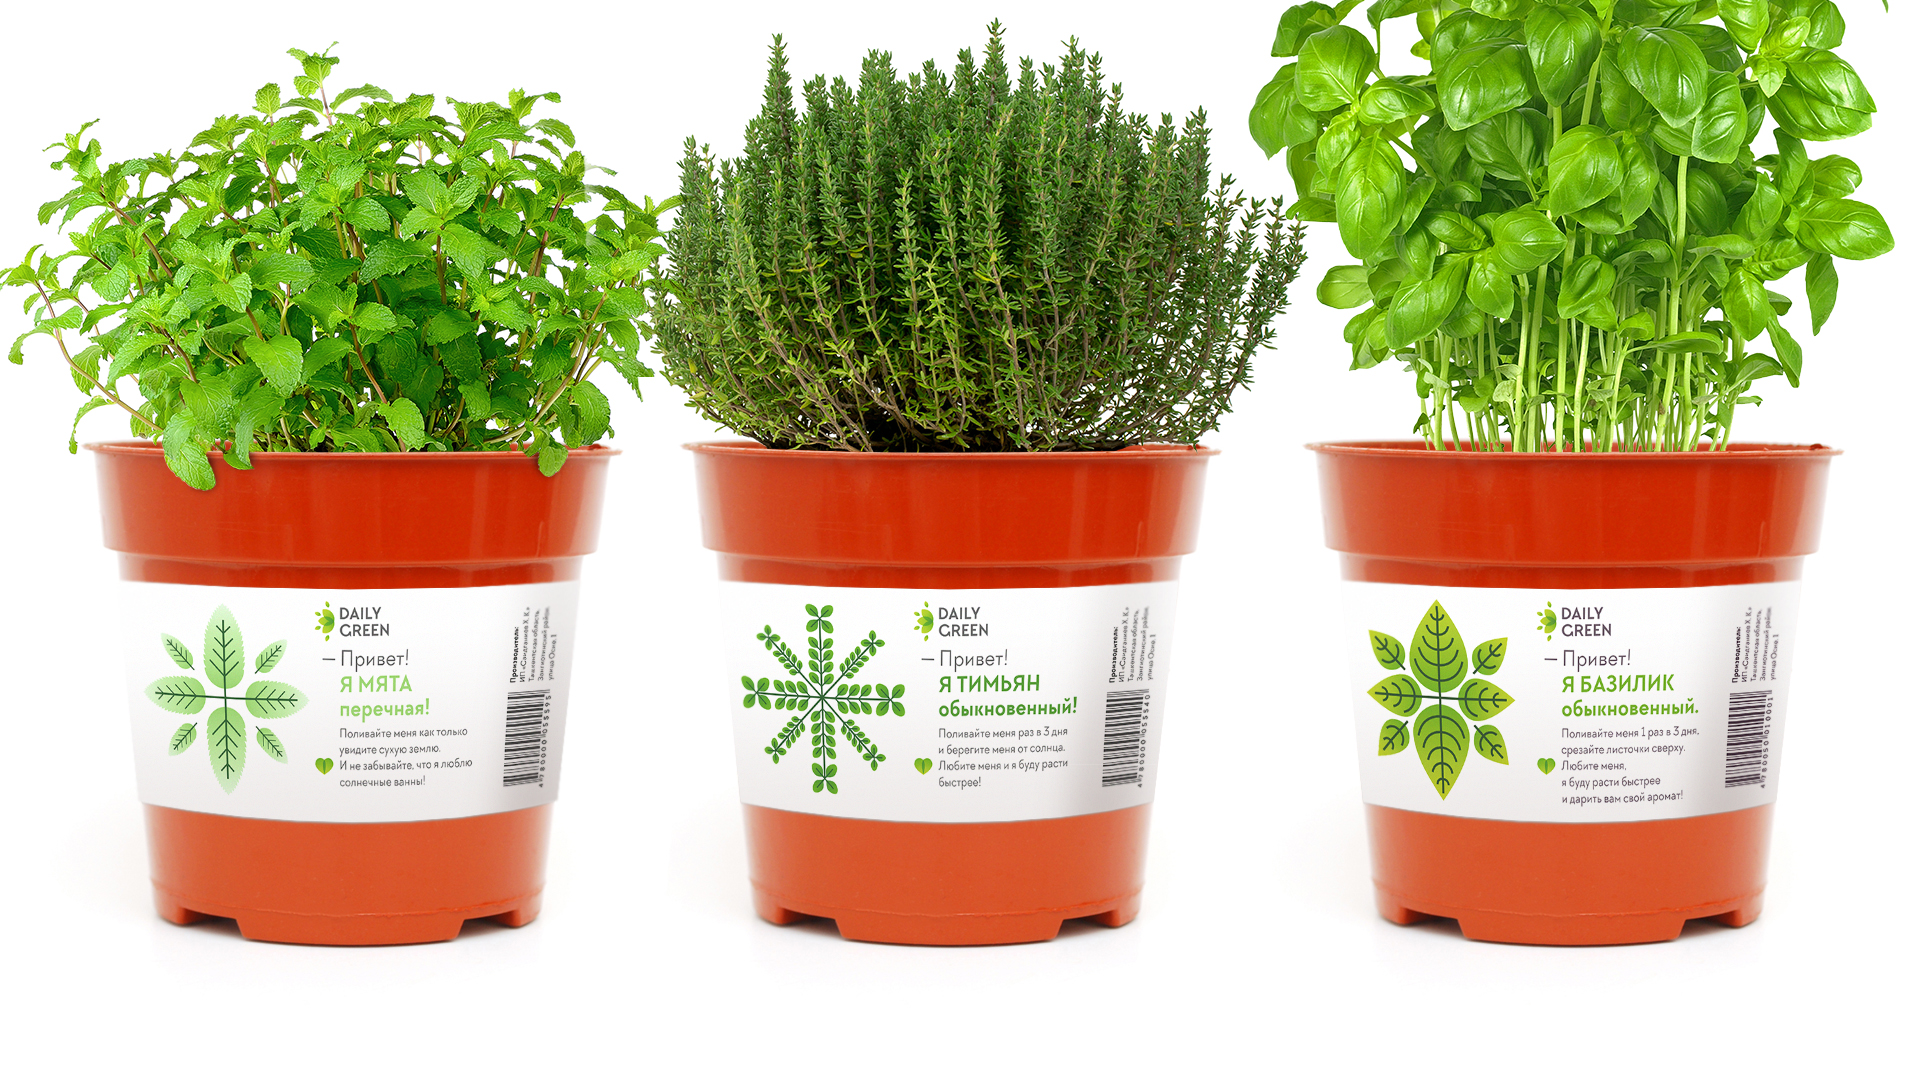 Fresh Greens and Spices in Pots